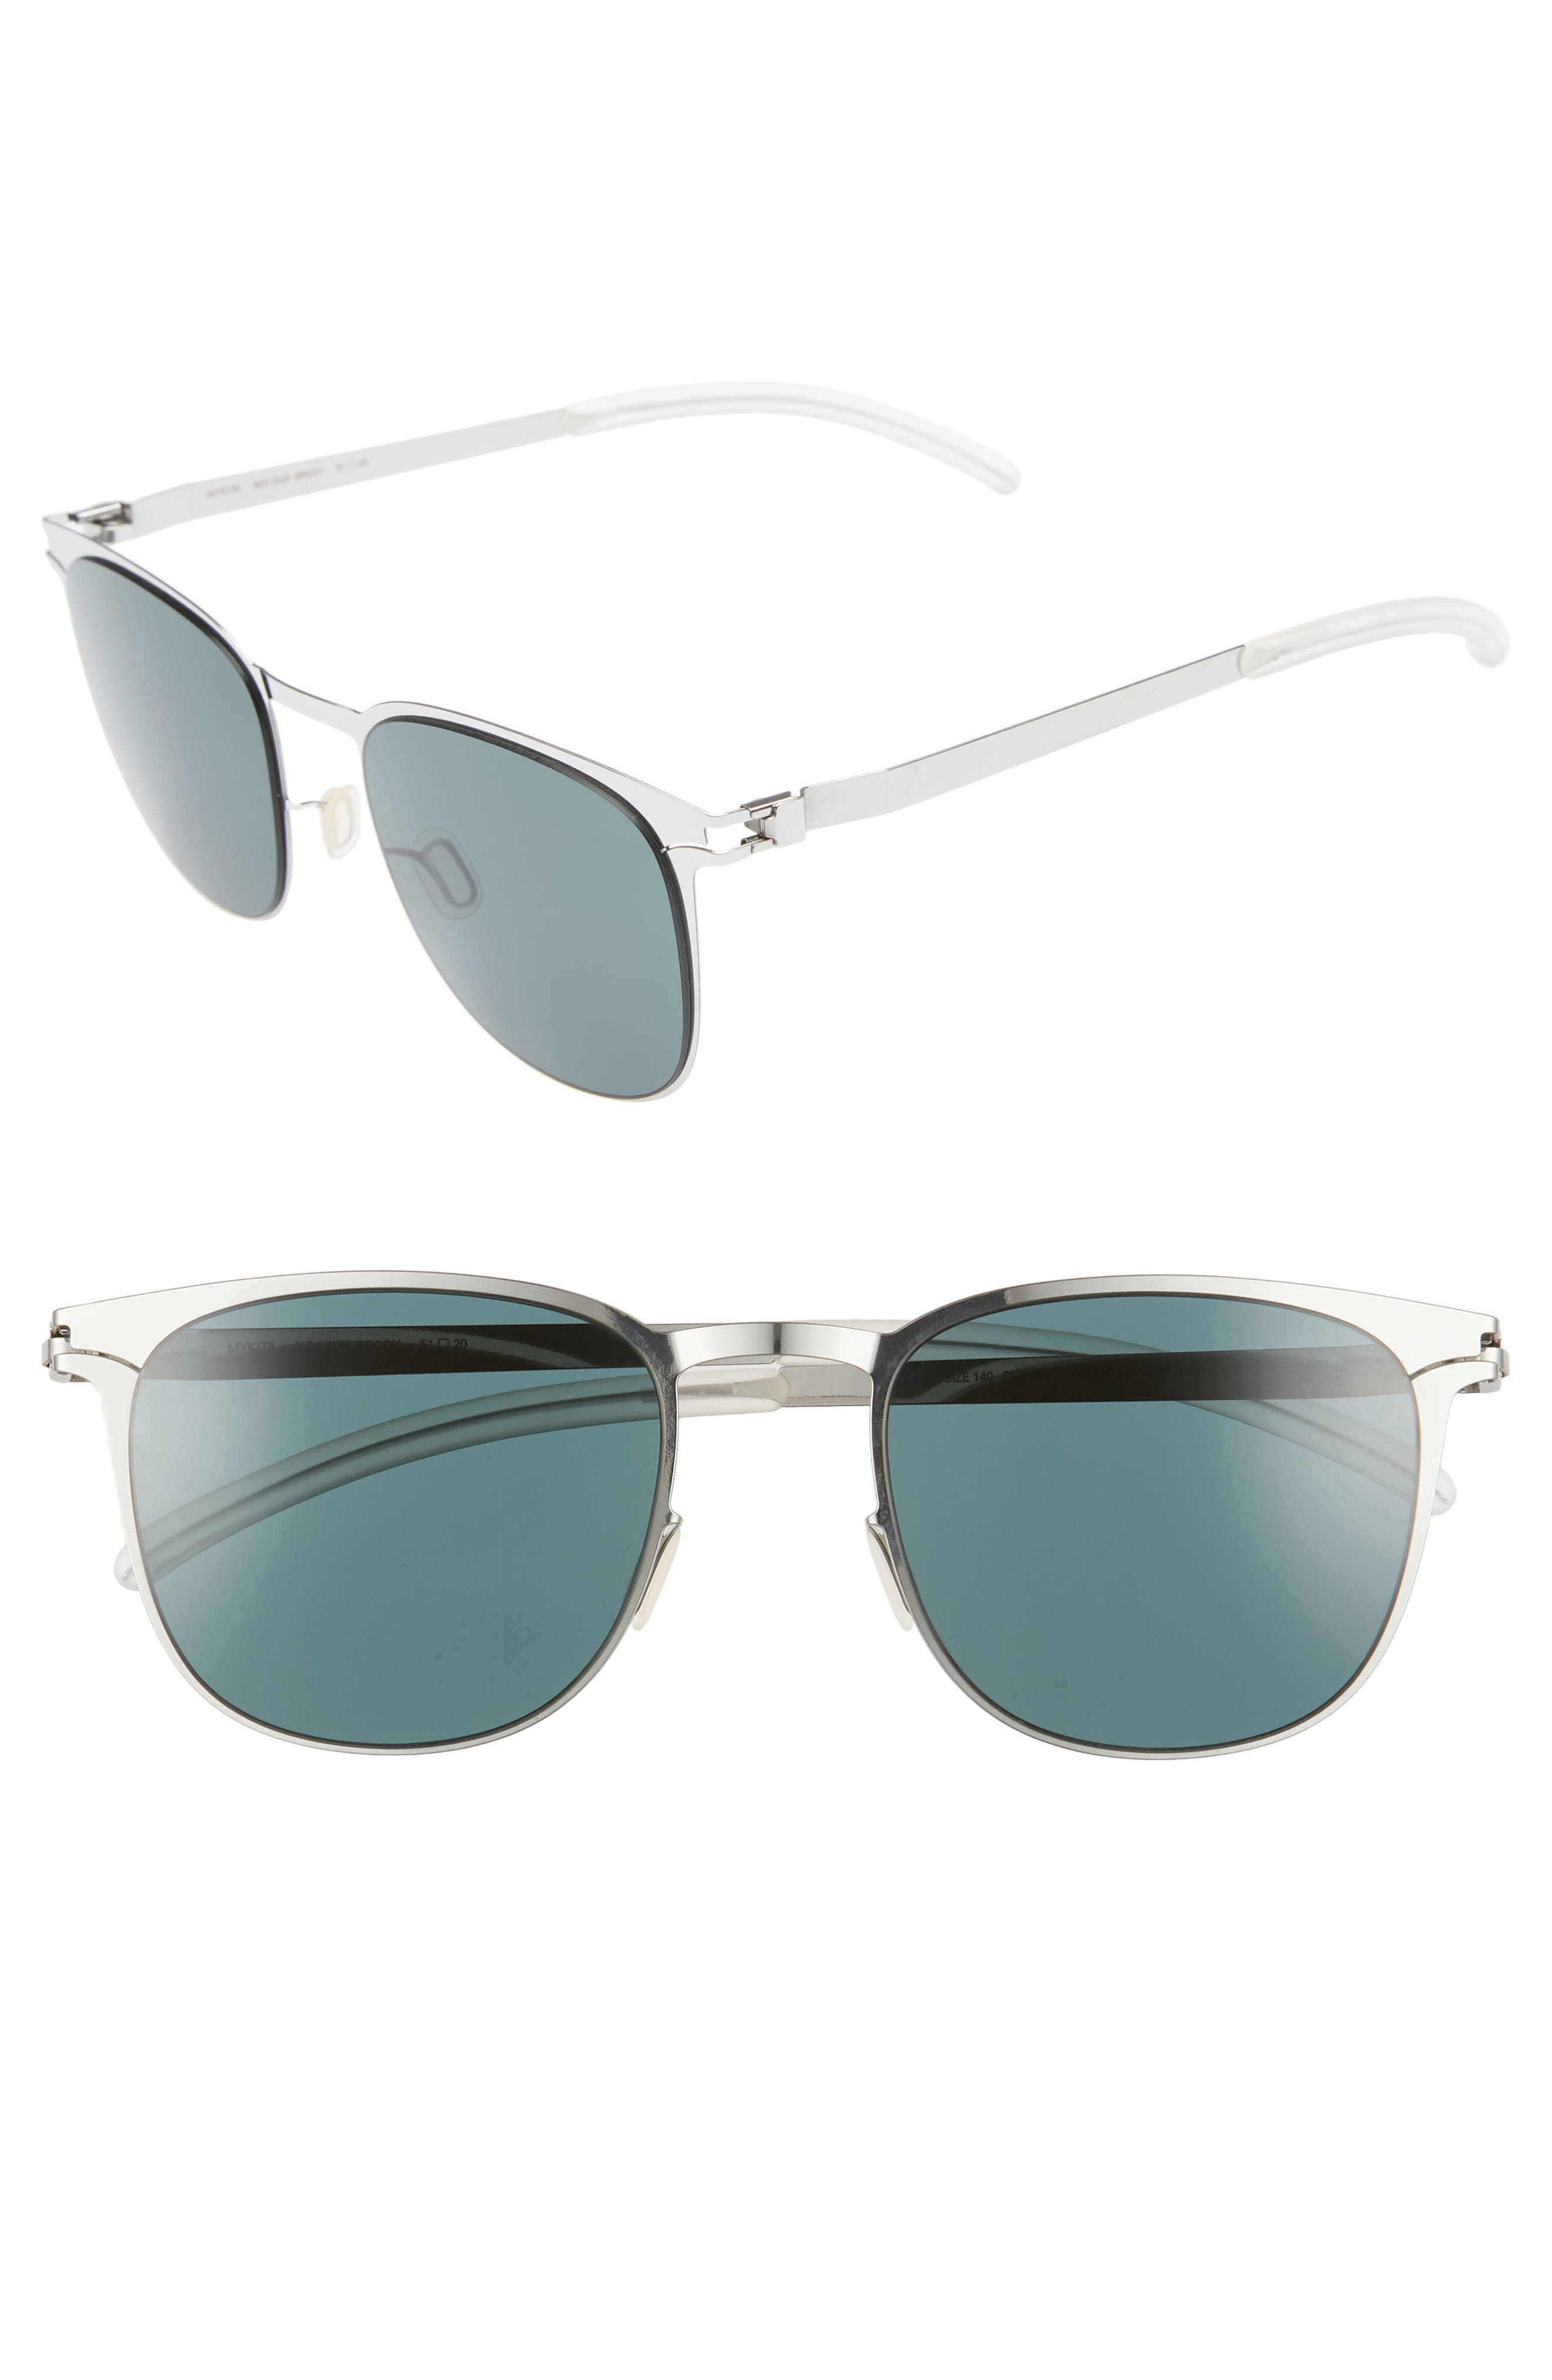 Brody 51mm Polarized Sunglasses,                         Main,                         color, Shiny Silver